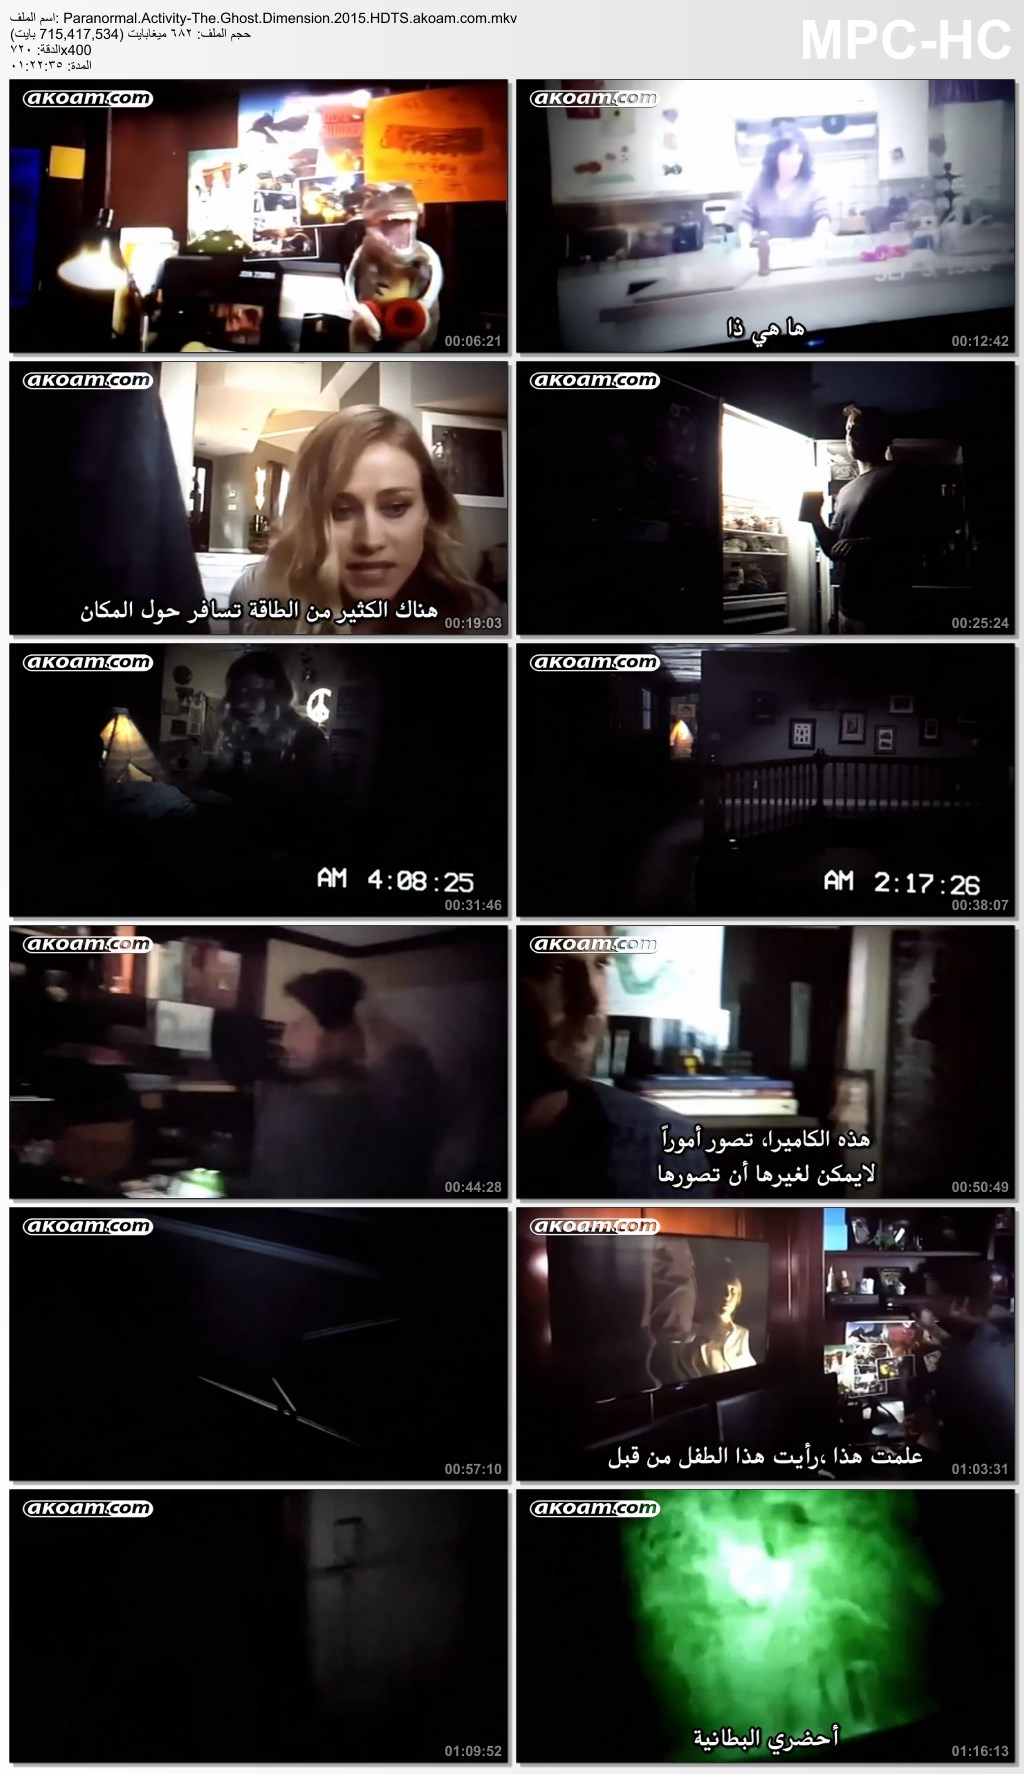 الرعب,Paranormal Activity: The Ghost Dimension,بوكس اوفيس,Paranormal Activity